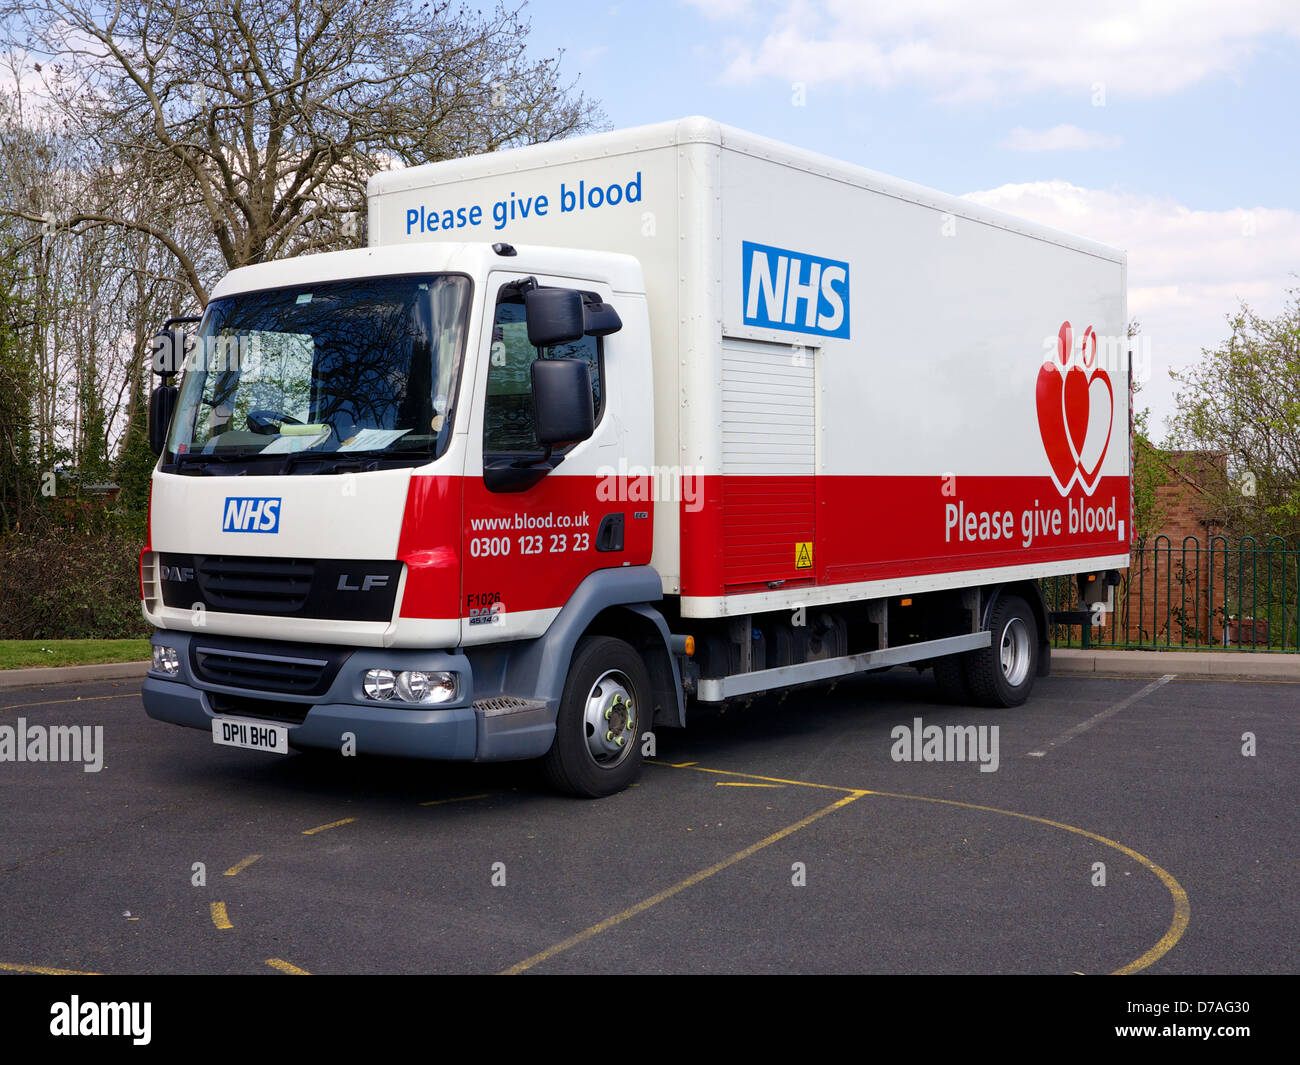 Blood Donation in the UK - Please Give Blood - Lorry outside drop in centre in Redditch, Worcestershire - Stock Image